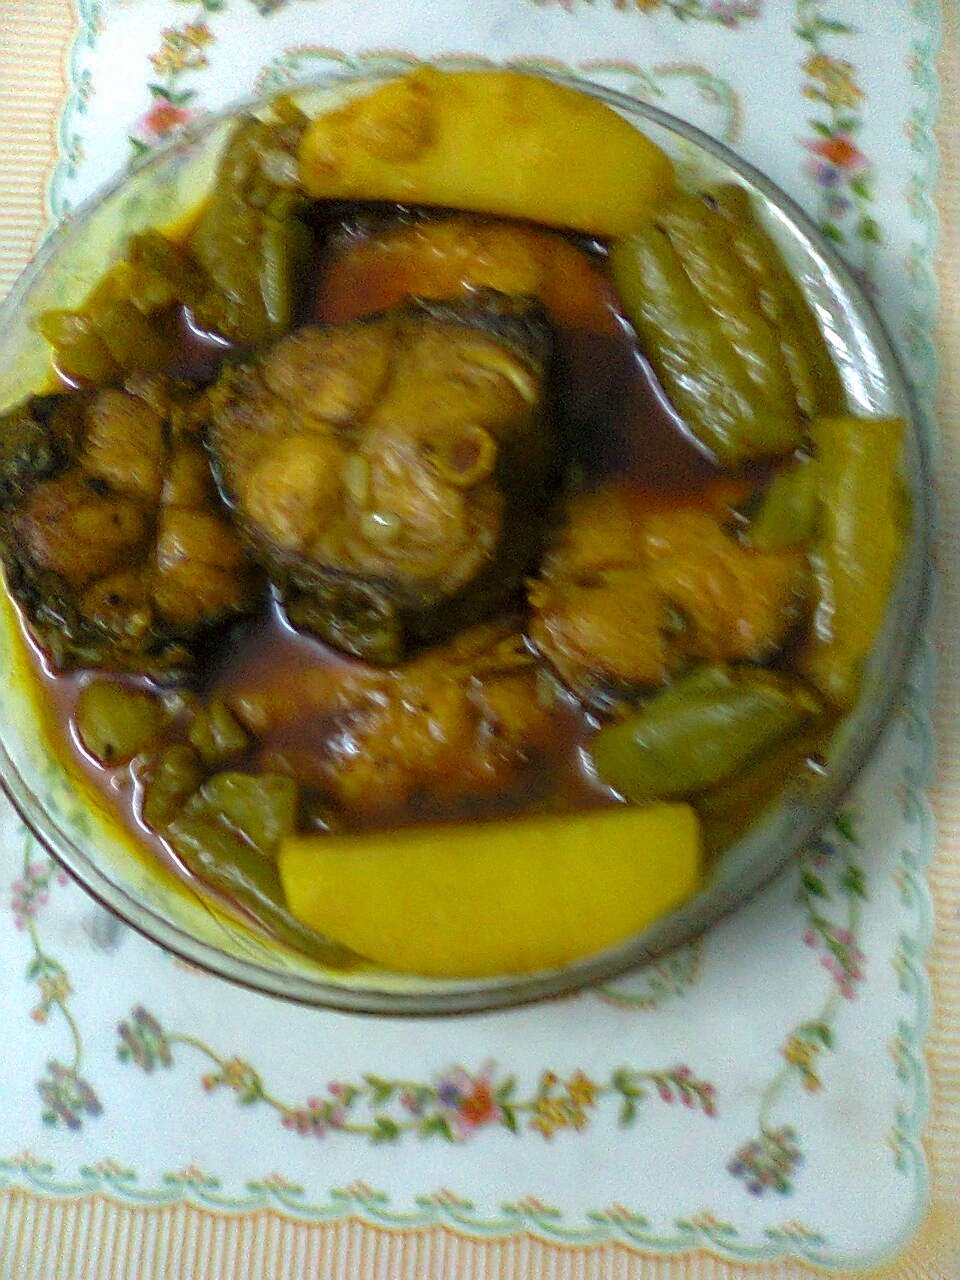 Light Gravy Of Rohu/Katla Fish With Potato And Ridge Gourd